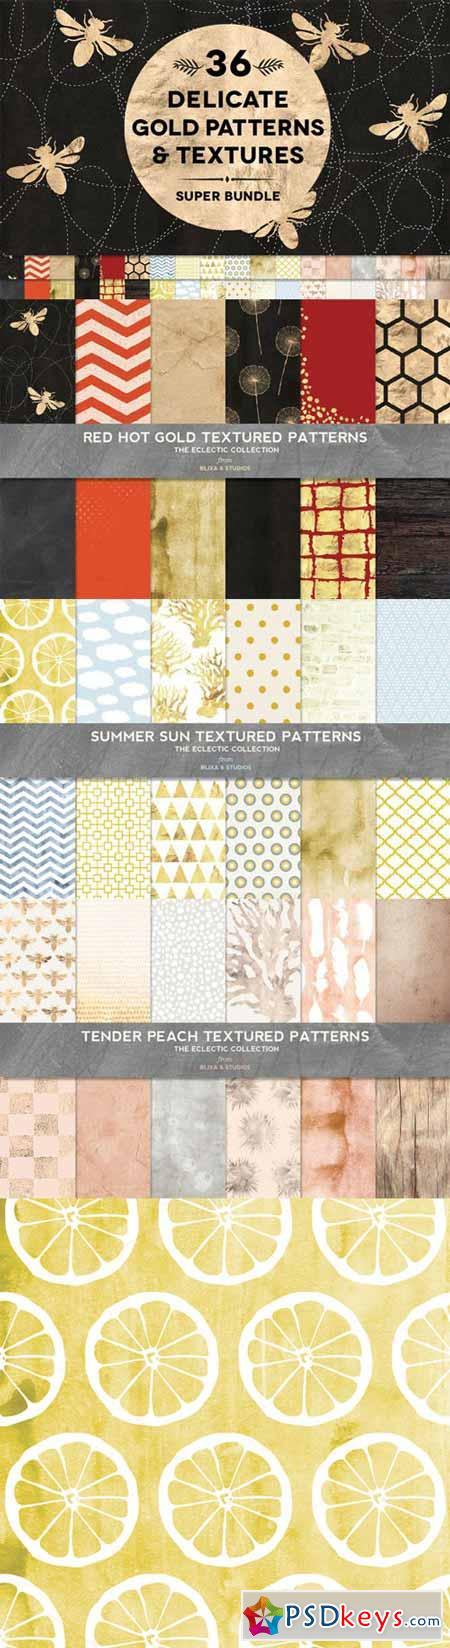 36 Delicate Gold Patterns & Textures 315204